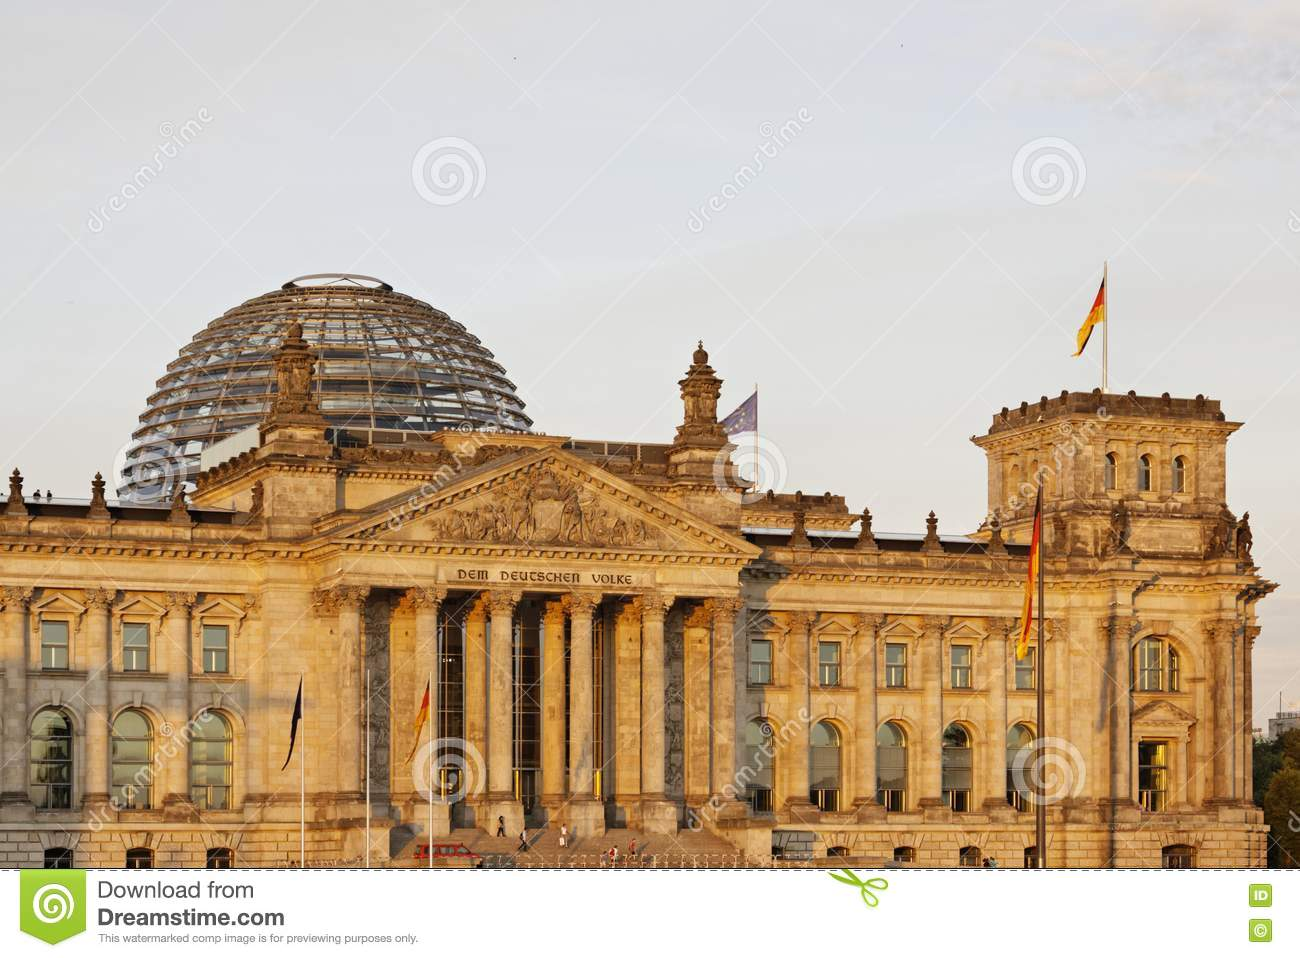 reichstag at berlin city - photo #24